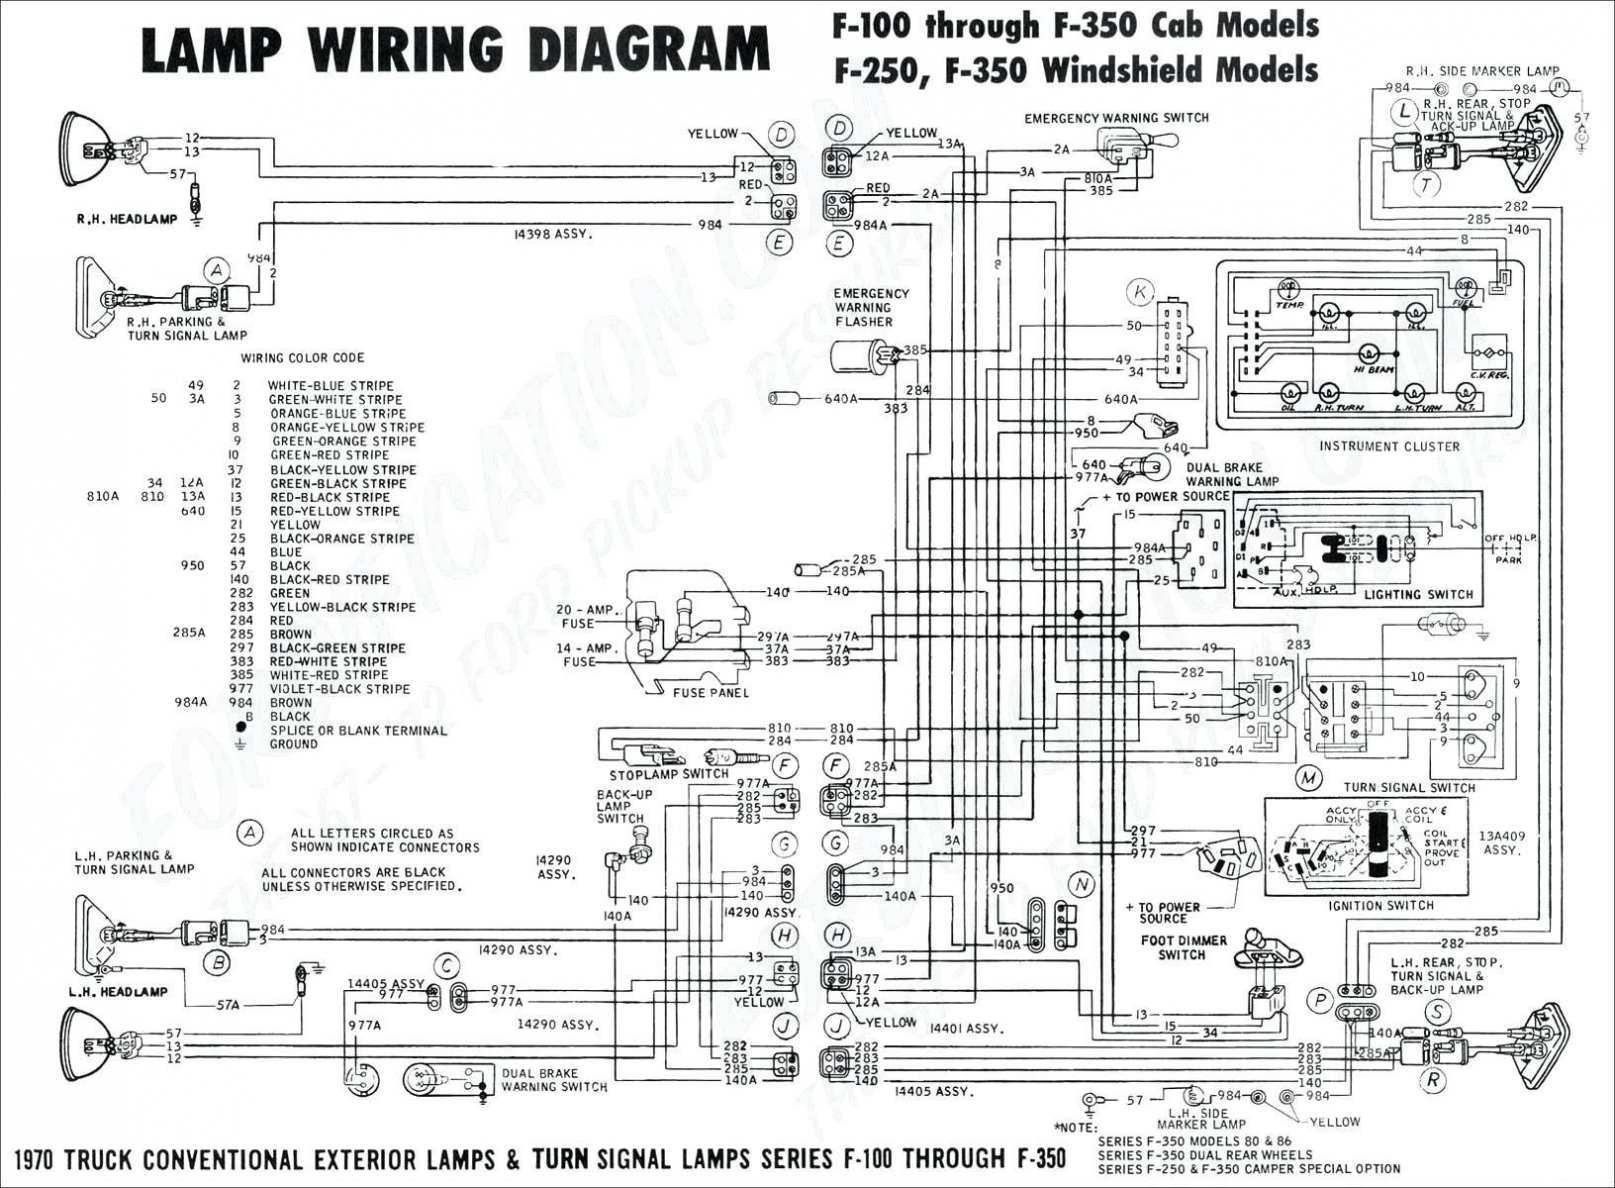 hight resolution of wiring diagram for 97 chevy cavalier free download use wiring diagram cadillac ignition switch wiring diagram